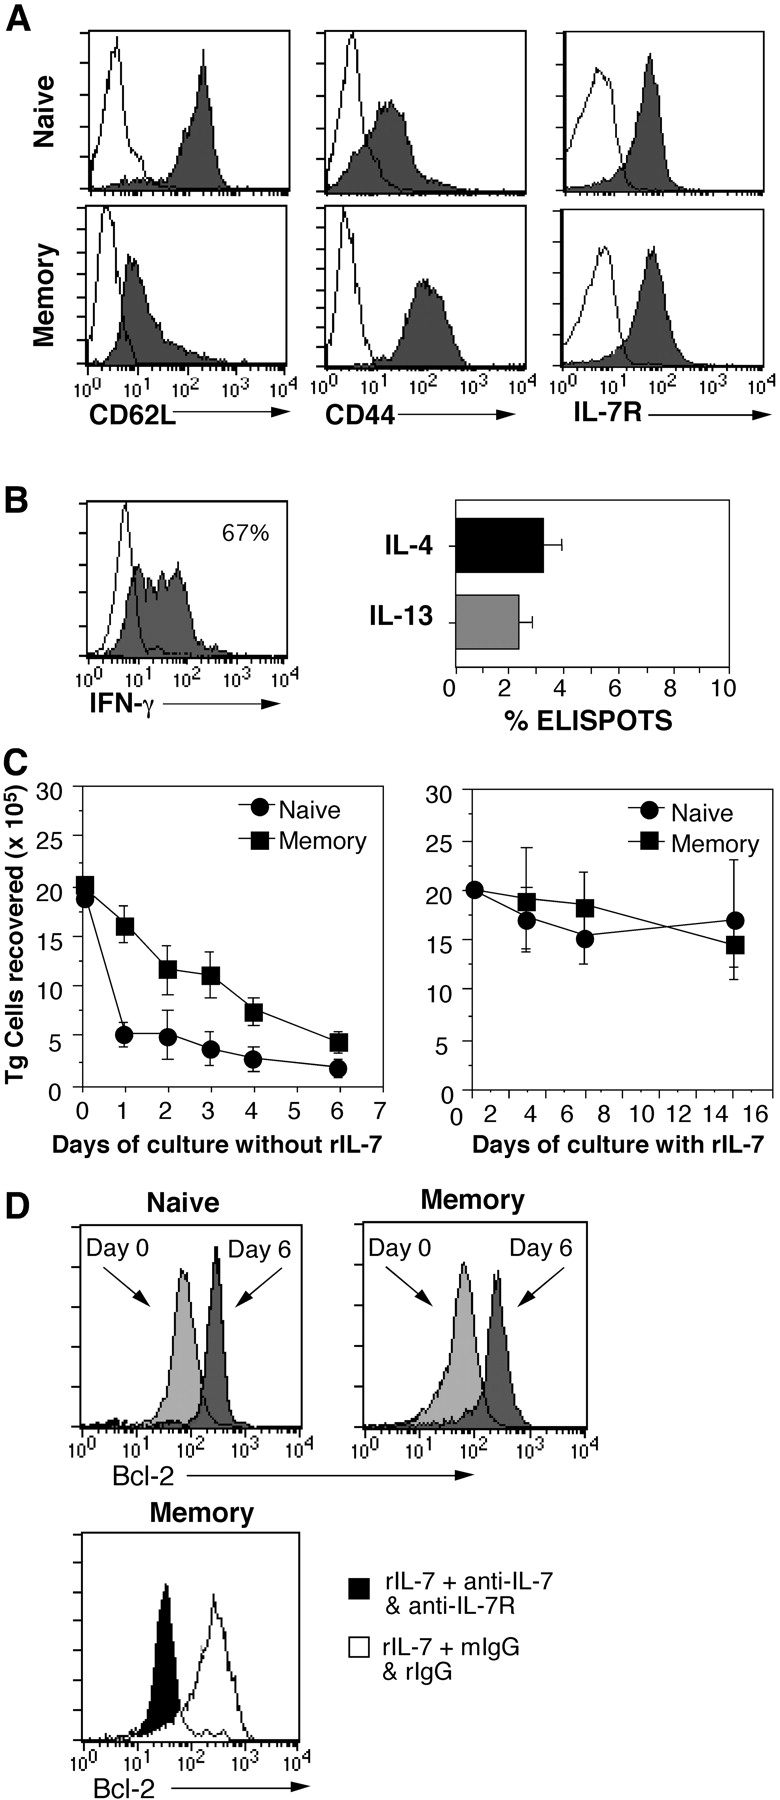 In vivo–primed TCR transgenic memory CD4 cells survive in response to rIL-7 in vitro. Purified naive OT-II Thy 1.1 CD4 cells were transferred into C57BL/6 Rag2 − mice (5 × 10 6 cells/recipient) and immunized with OVA protein and adjuvant as indicated in Materials and Methods. 1 mo later, resting memory OT-II cells were isolated and compared with freshly isolated naive OT-II cells. (A) Phenotype of memory OT-II cells. Naive and memory OT-II cells were stained for expression of CD62L, CD44, and IL-7Rα and analyzed by flow cytometry (shaded histograms; unshaded histograms denote background staining). (B) Frequencies of effector cytokine producers among memory OT-II cells. Memory OT-II Thy 1.1 cells were restimulated with OVA peptide in the presence of splenic APC and tested for secretion of IFN-γ at 12 h by ICS, and after enrichment of Thy 1.1 cells, for production of IL-4 or IL-13 at 24 h by ELISPOT analysis. (C) IL-7 promotes survival of OT-II cells. Naive and memory OT-II Thy 1.1 cells were cultured at 10 6 /ml for the indicated number of days without or with rIL-7 at 10 ng/ml (left and right, respectively). (D) Blocking IL-7 prevents up-regulation of Bcl-2. Naive (top left) and memory (top right) OT-II Thy 1.1 CD4 cells were stained for expression of Bcl-2 (light gray histograms). The cells were cultured as in C for 6 d with 10 ng/ml rIL-7 and stained for BcL-2 (dark gray histograms). Memory cell cultures were also treated with either 10 μg/ml each anti–IL-7 and anti–IL-7R mAb or with an equivalent amount of rat and mouse IgG (bottom, rIgG and mIgG, respectively). The cells were stained for Bcl-2 on day 6 after culture with blocking mAb (shaded histogram) or with control mAb (unshaded histogram).